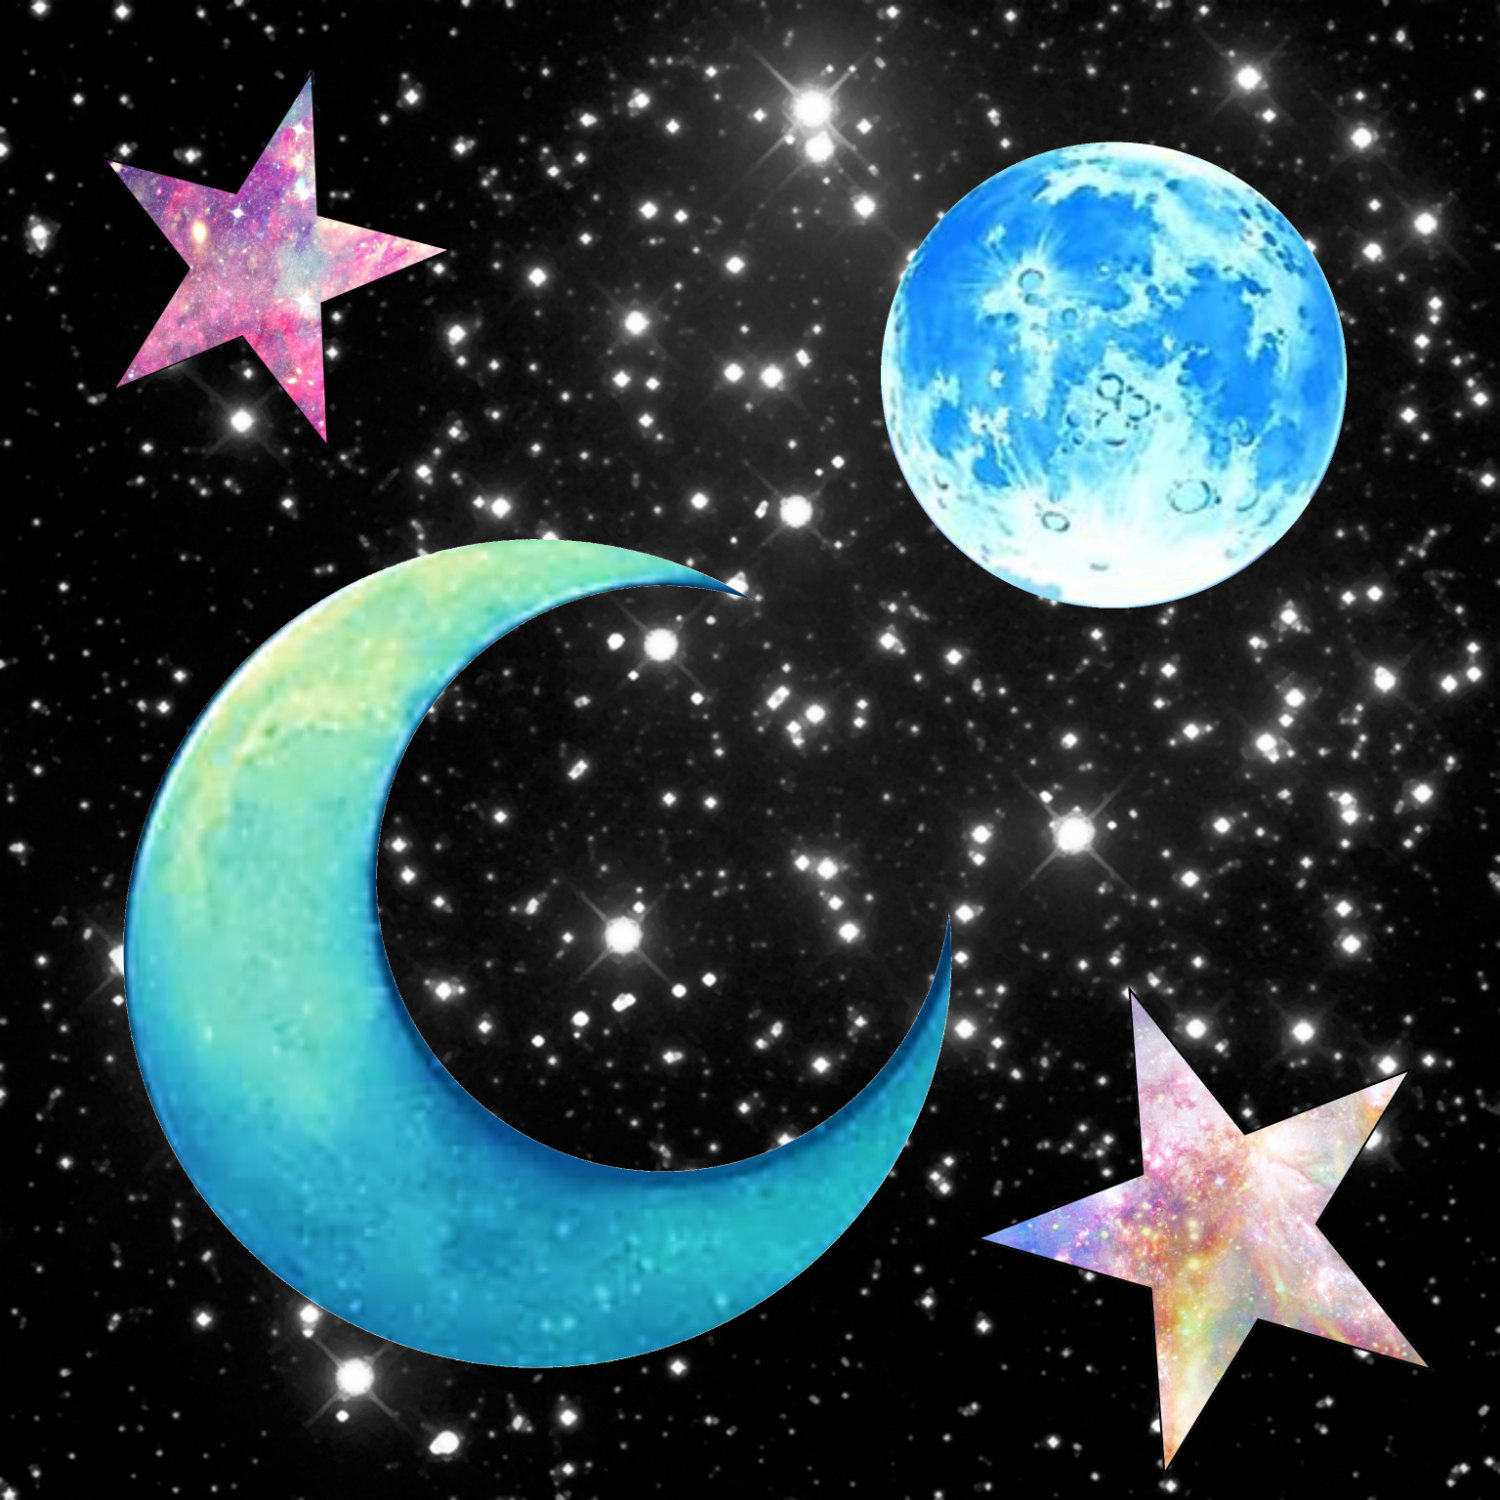 Galaxy clipart. Moon and stars png